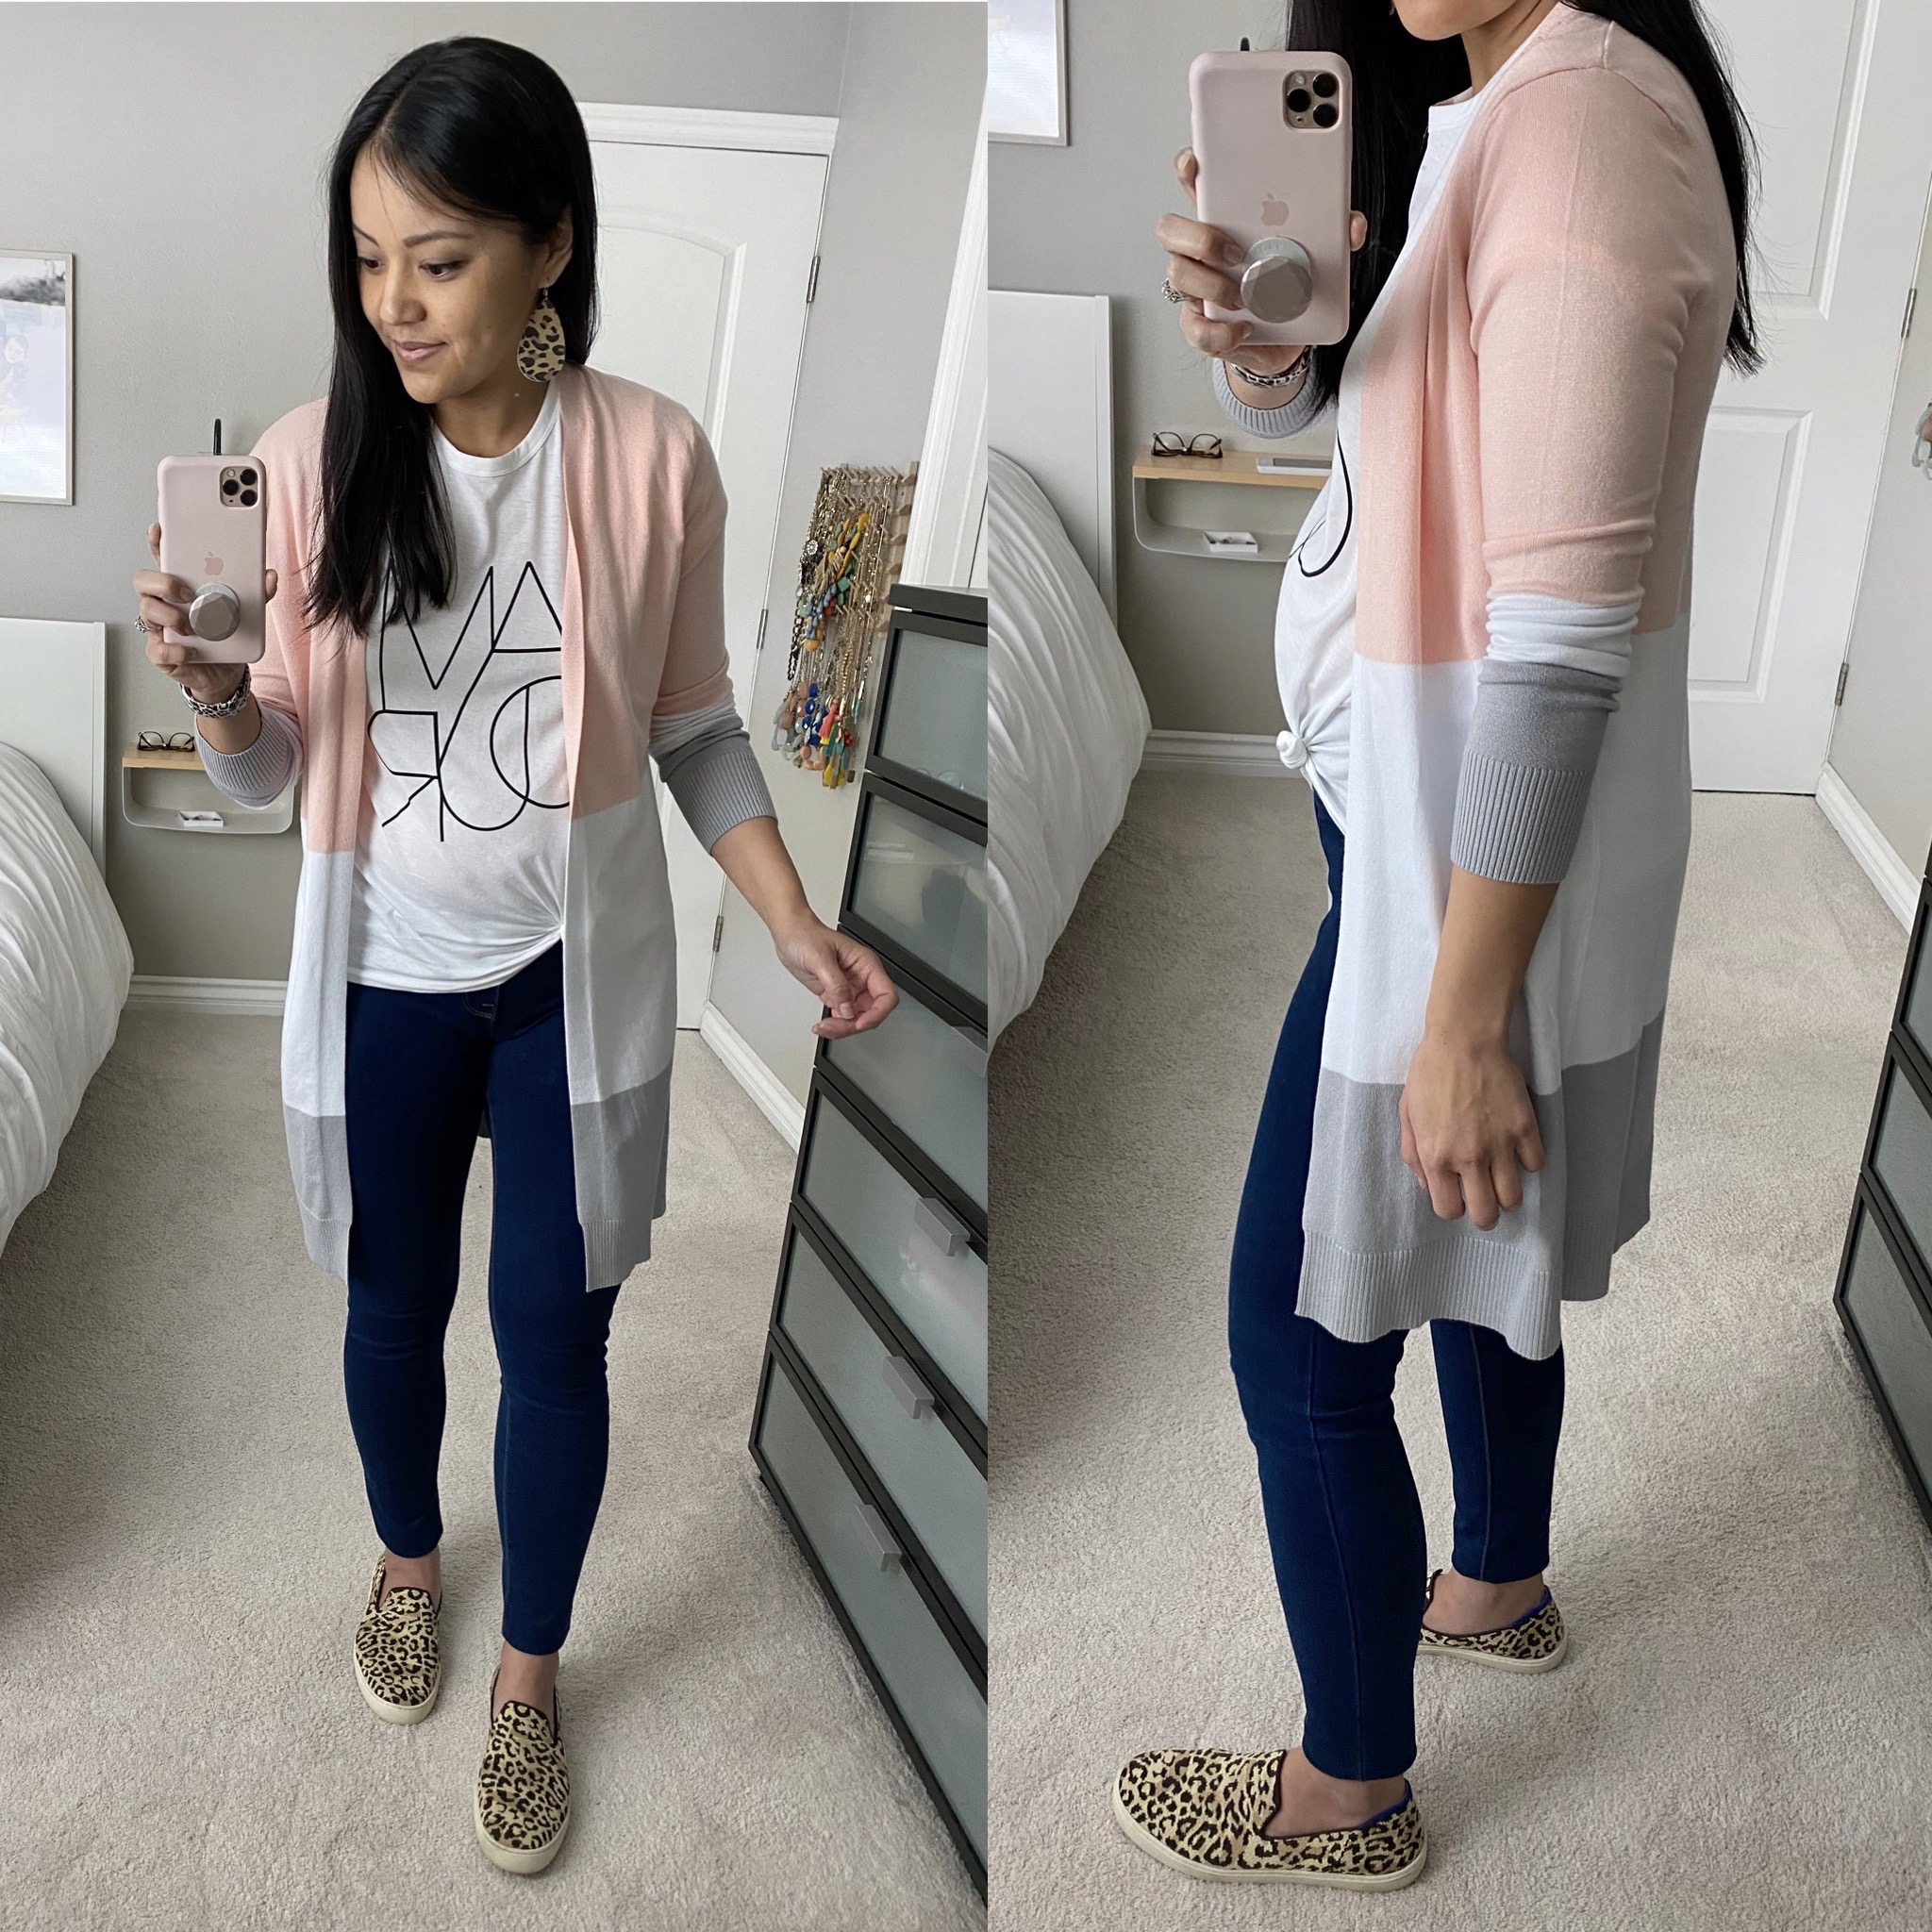 Casual Spring Outfit: white graphic tee + long pink and grey color block cardigan + dark skinny jeans + leopard slip-on sneakers + leopard leather earrings